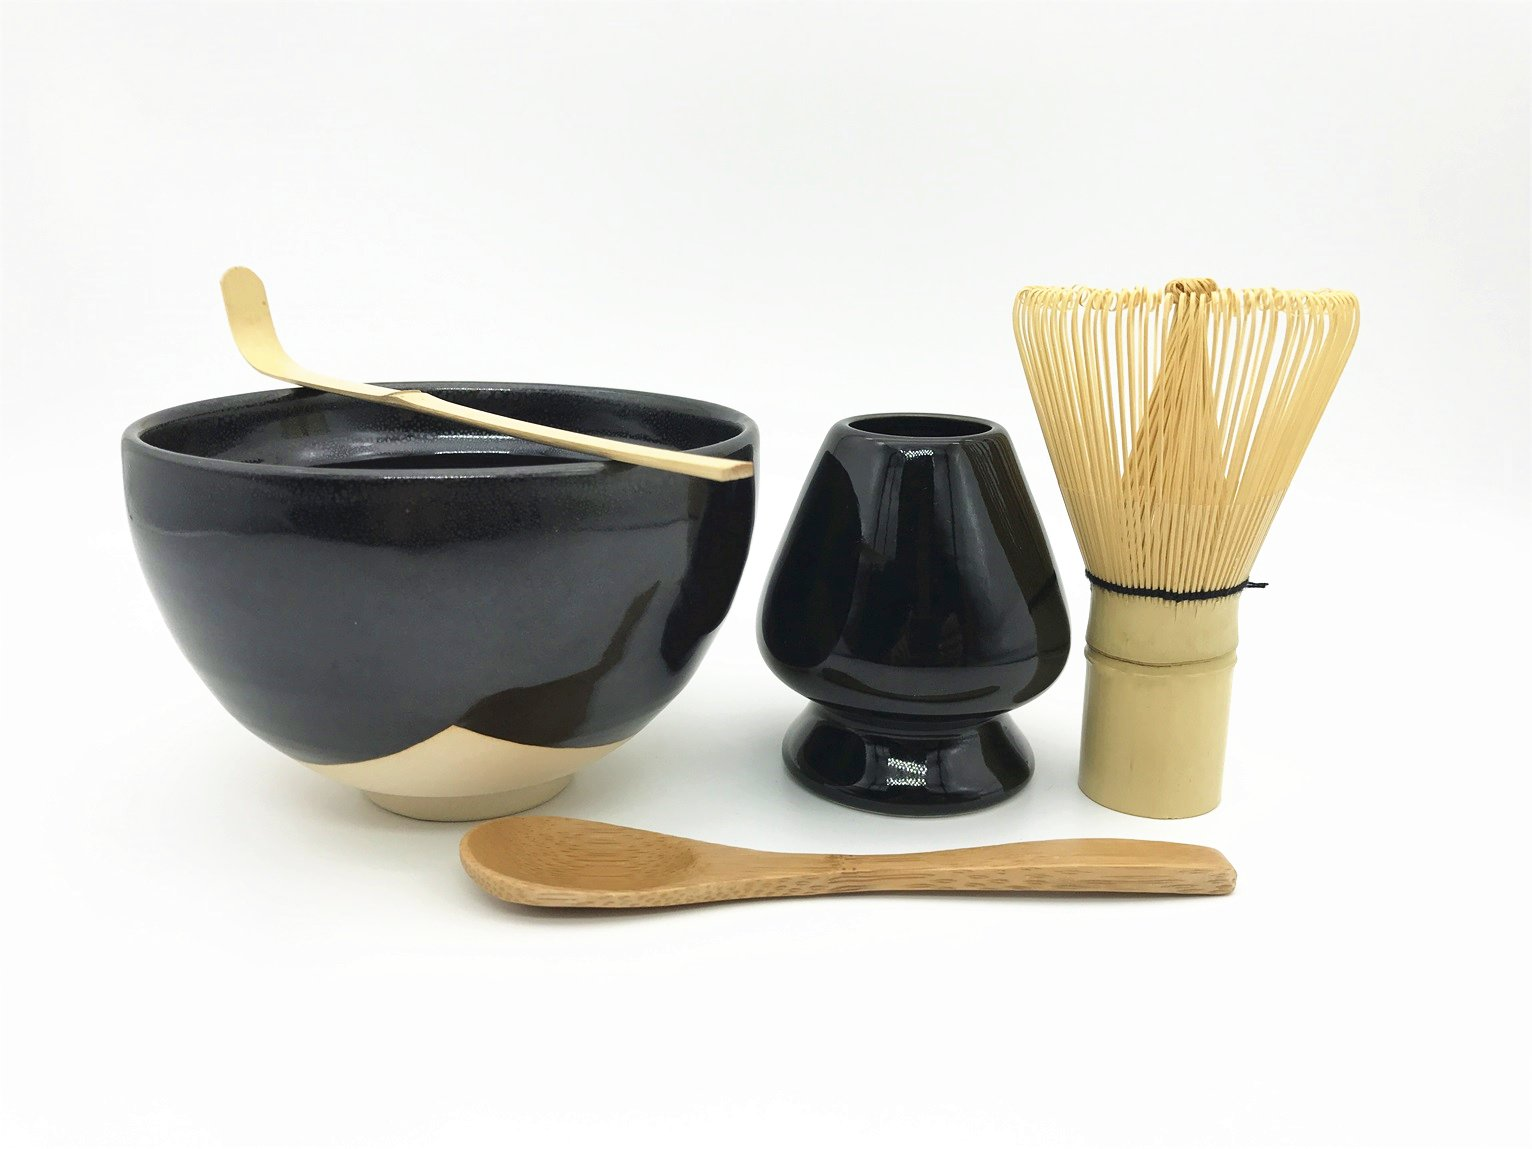 CHAQI 5 Items Matcha Ceremony Start Up Kit:Bamboo Whisk,Spoon & Scoop,Ceramic Matcha Bowl and Whisk Holder-Complete Matcha Gift Set (Black 1)